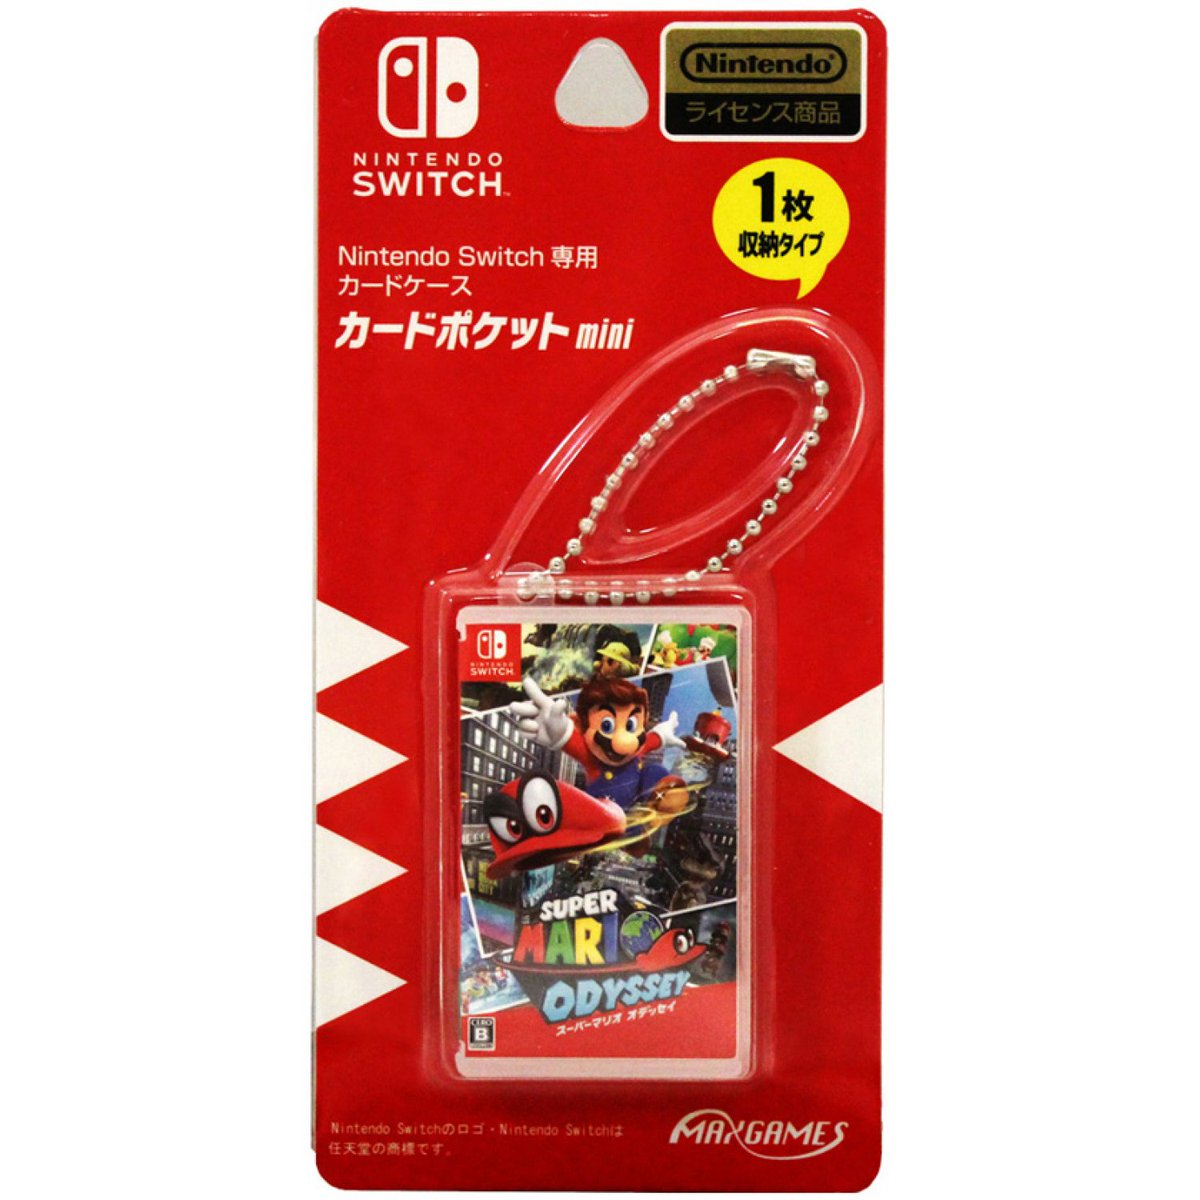 Uzivatel Nintendo Wire Na Twitteru The Nintendo Switch Mini Game Case Cart Holders Are Now Available To Order Via Play Asia Save 3 With Code Ninwire On Orders Of 19 Or More Https T Co Ubfpn45q7u